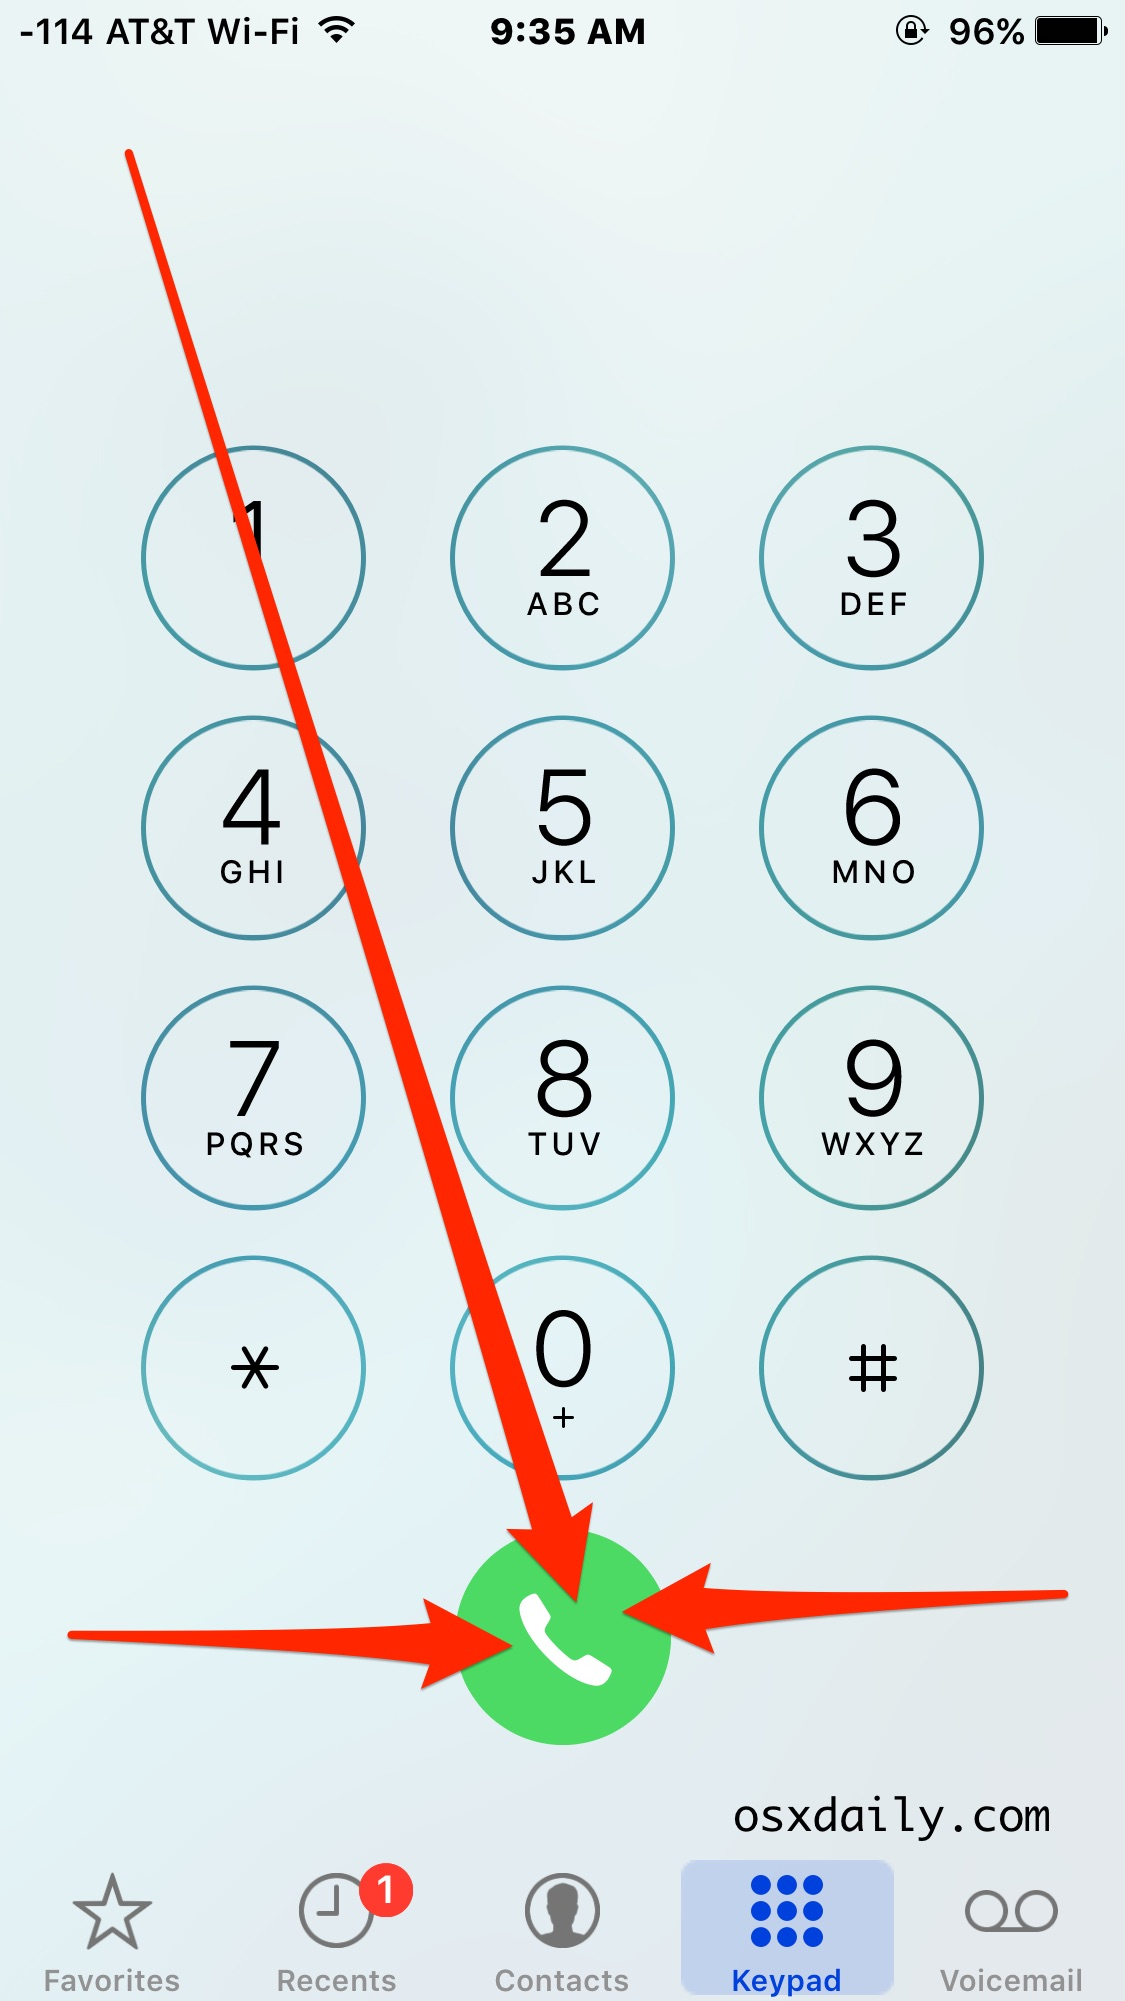 Redial the last number called on iPhone